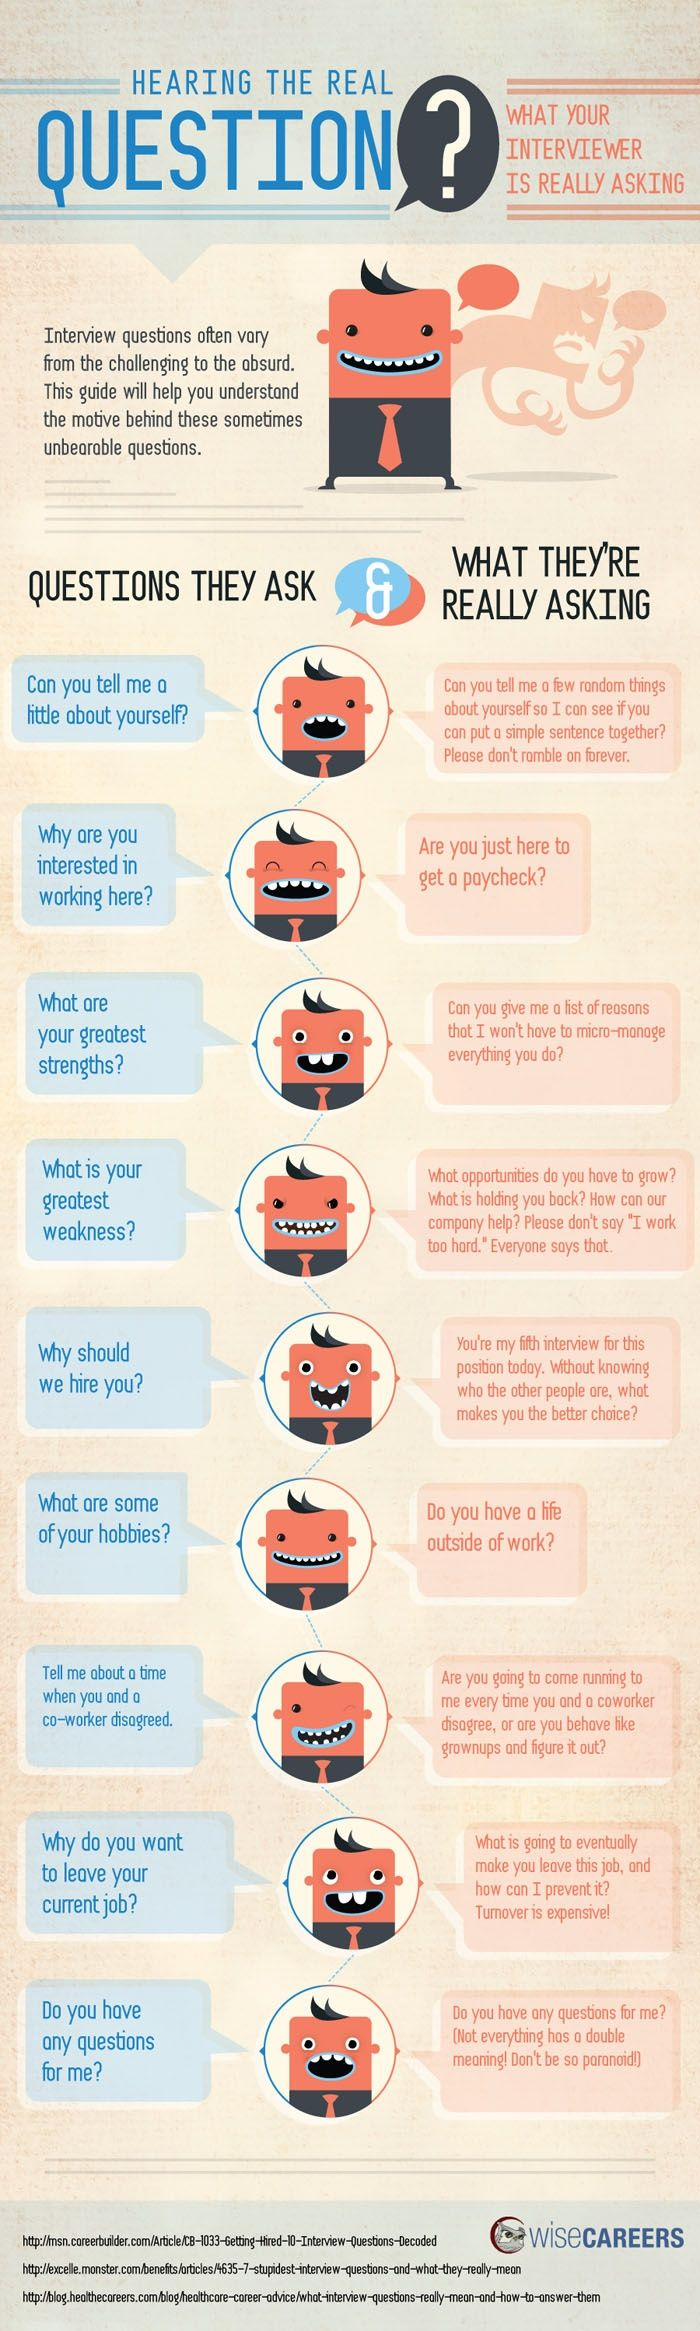 awesome sign to have at a wedding interview adviceinterview - How To Have A Good Interview Tips For A Good Interview